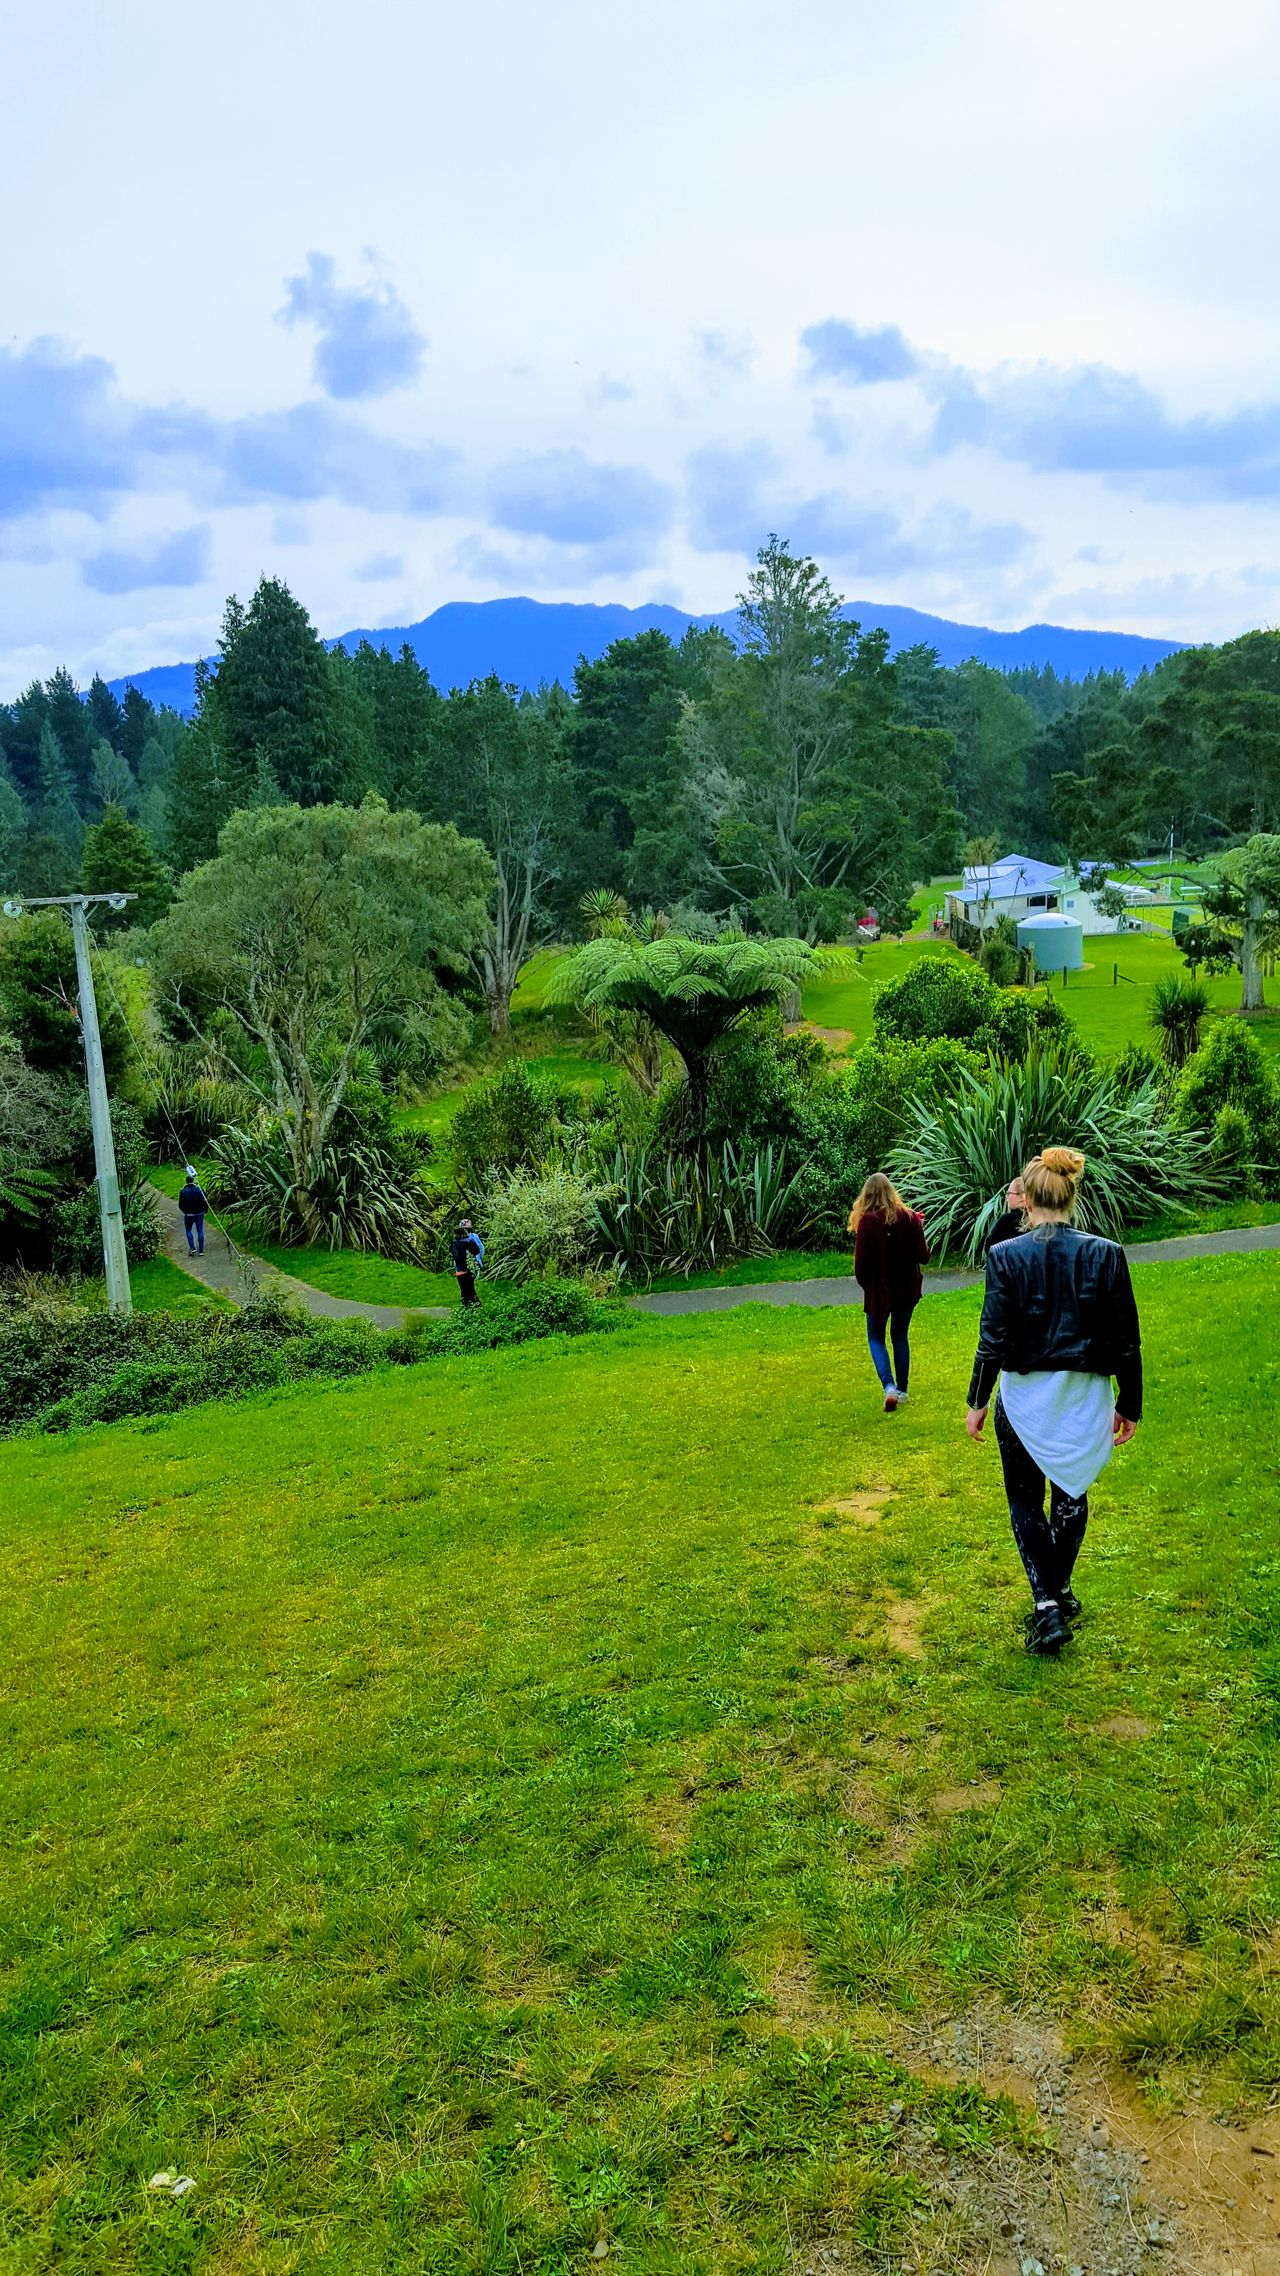 Adult Adults Only Beauty In Nature Cloud - Sky Day Grass Green Color Growth Landscape Lush - Description Nature One Person Outdoors People Real People Scenics Sky Tranquility Travel Destinations Tree Women